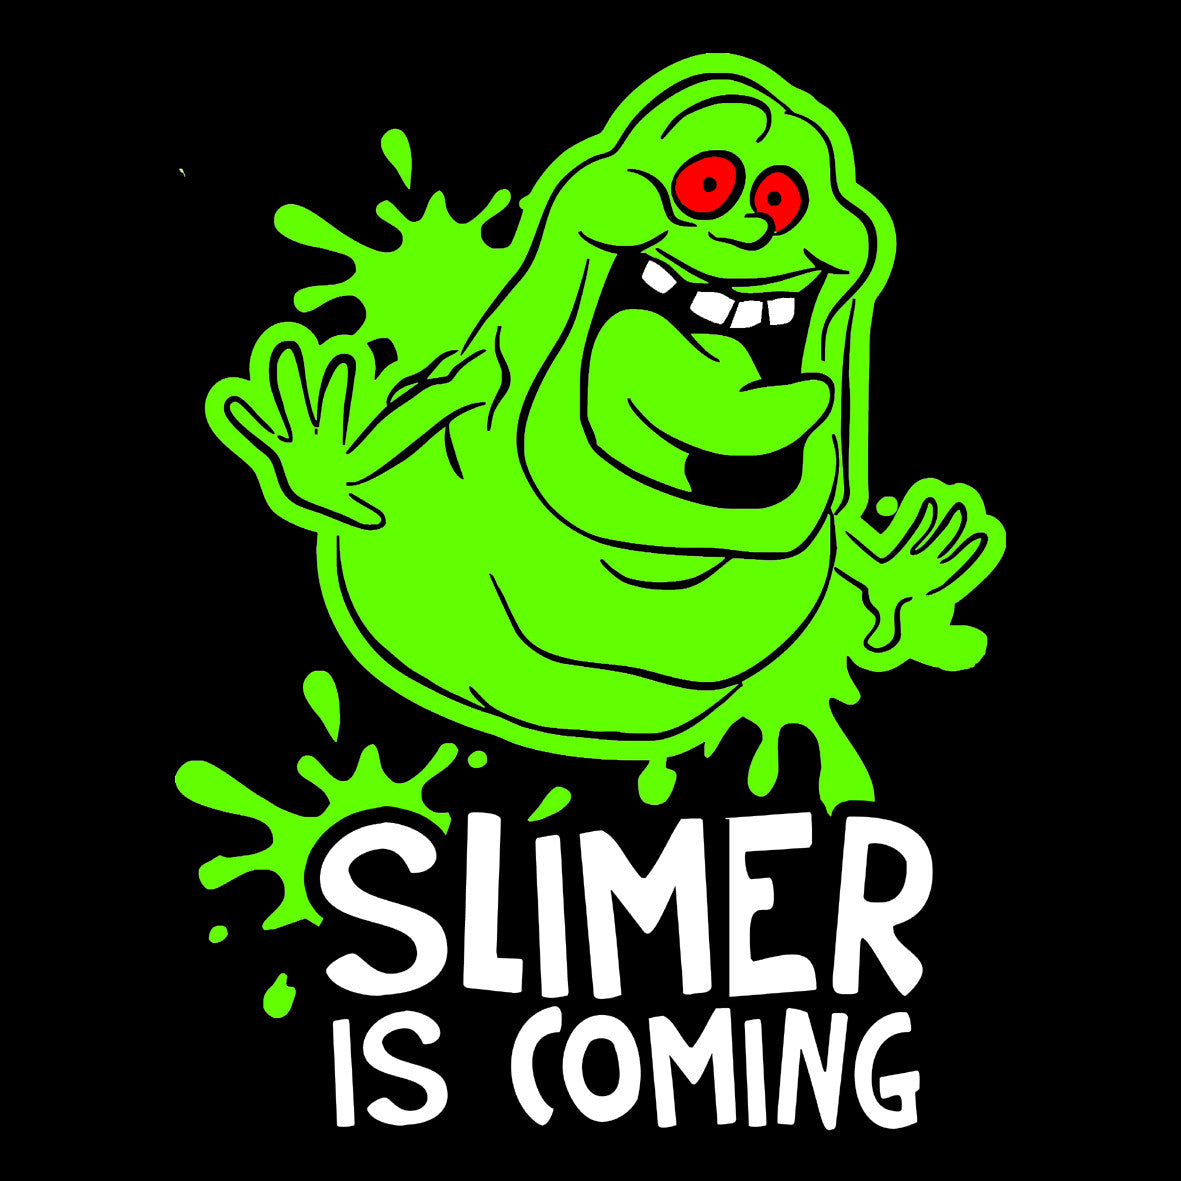 Ghostbusters Slimer Is Coming Central T Shirts